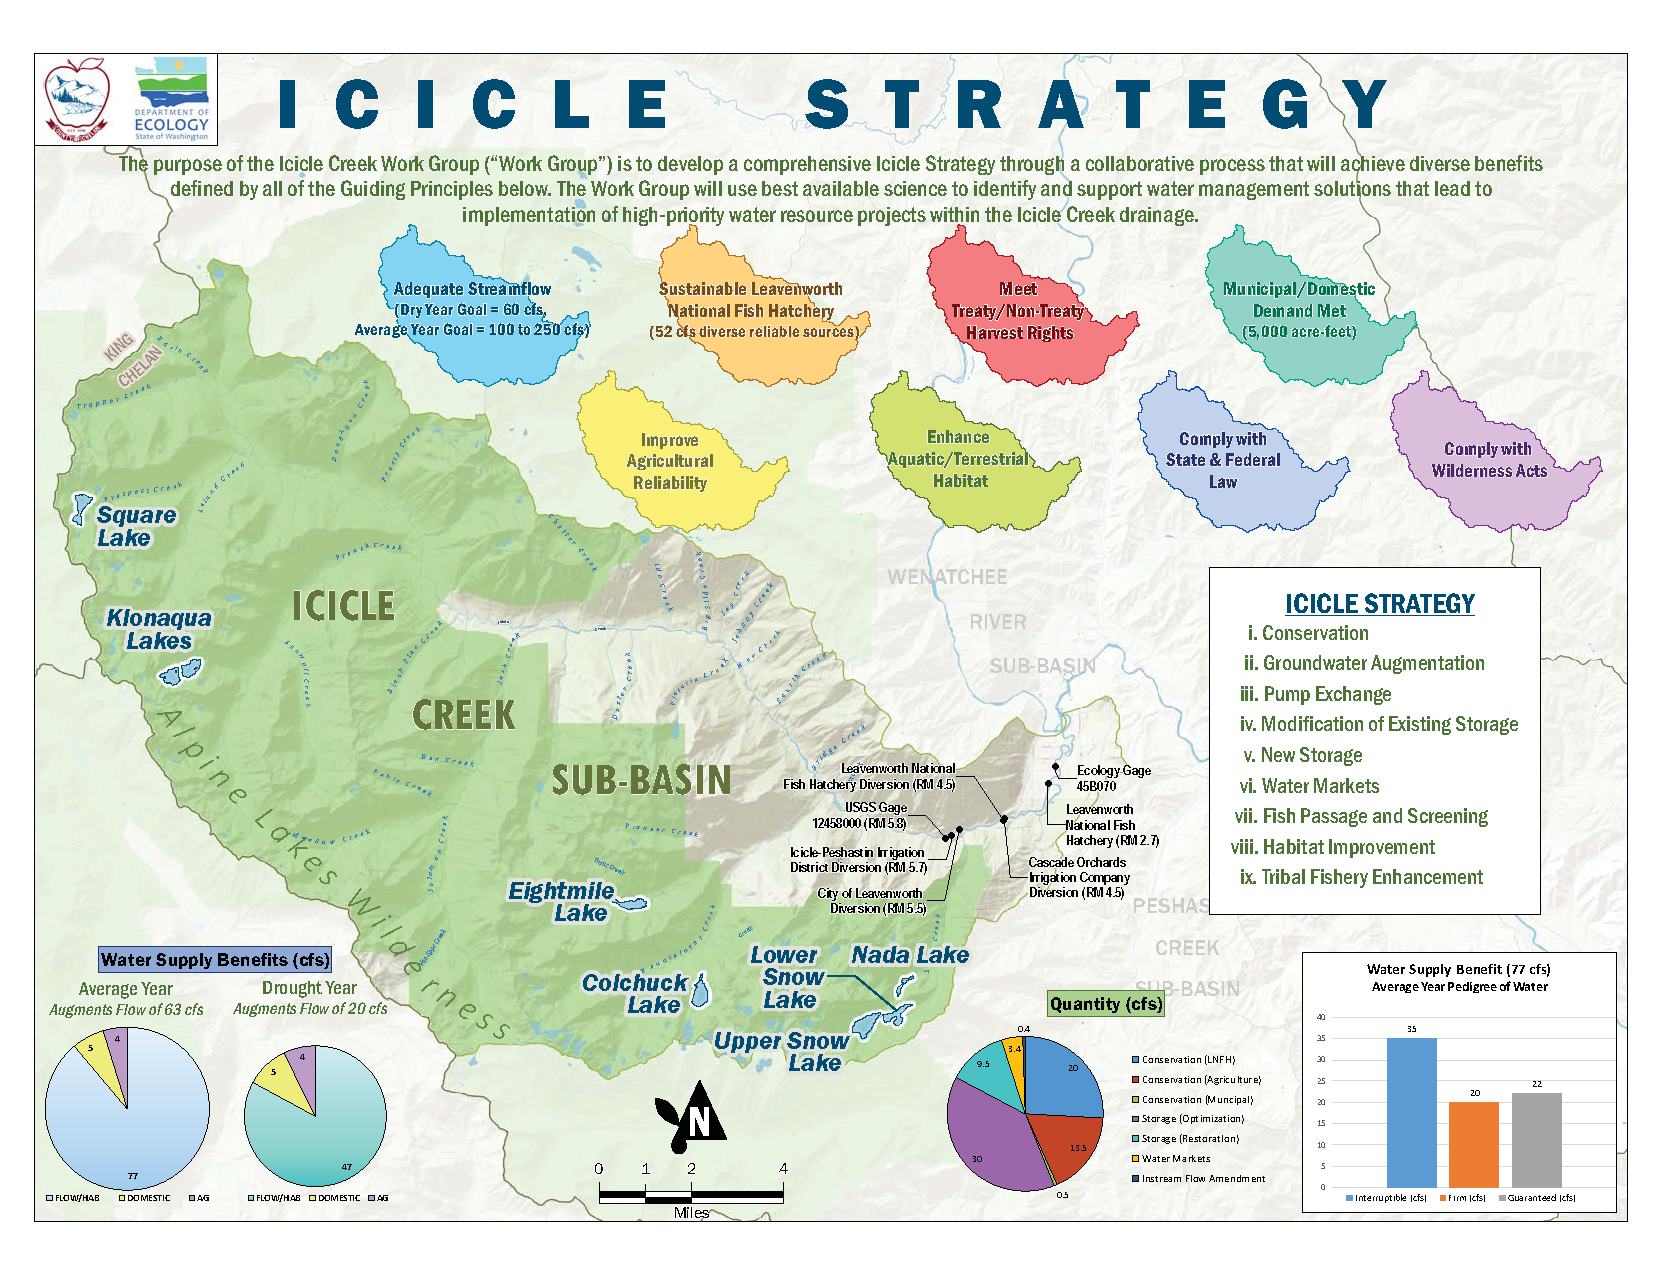 Icicle strategy poster used in SEPA scoping meeting. Click Image for FULL RESOLUTION